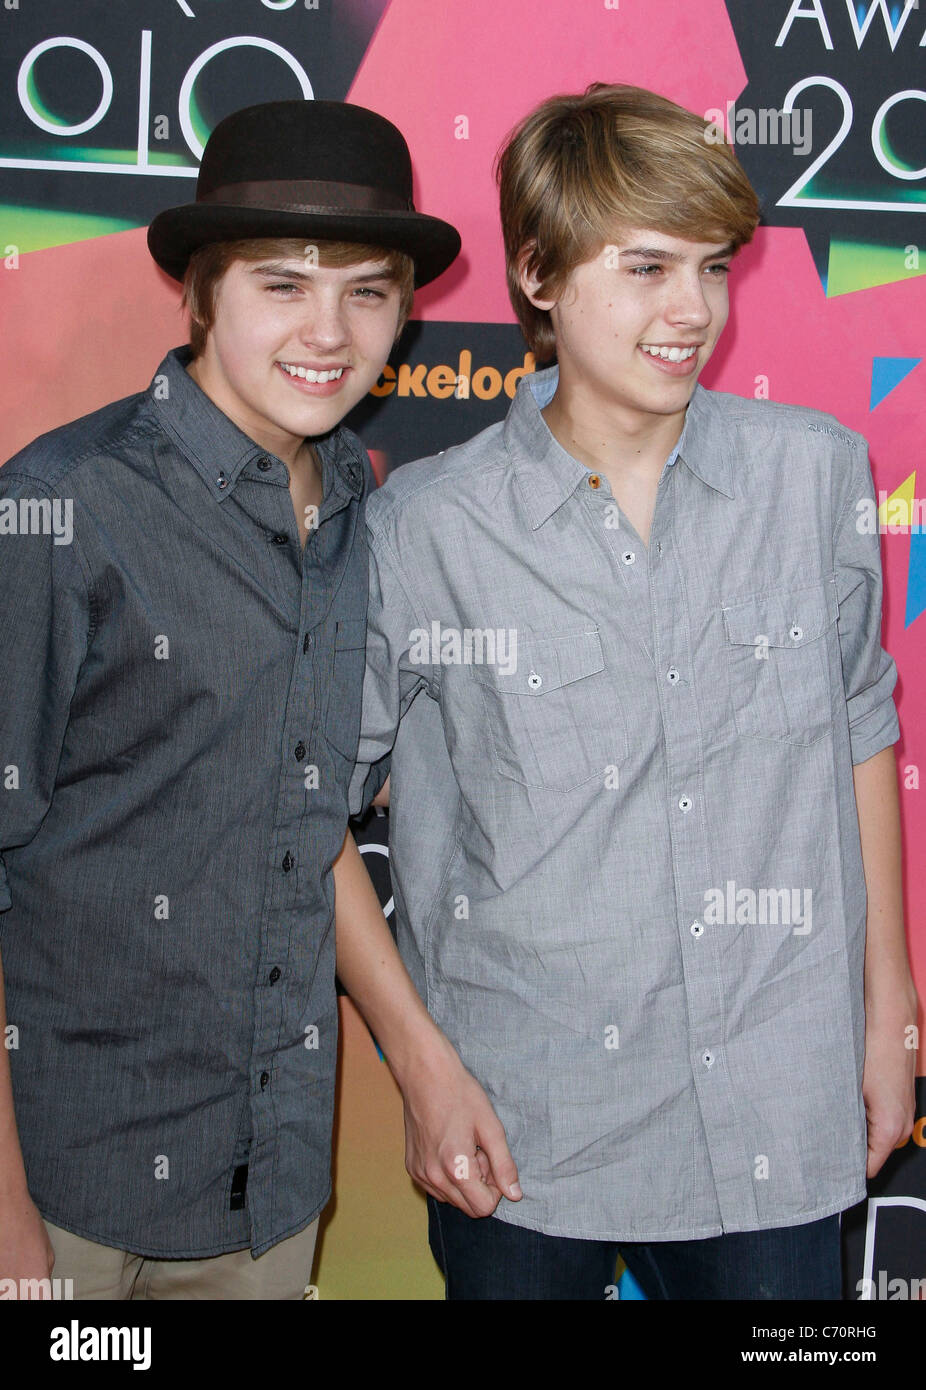 https://c8.alamy.com/comp/C70RHG/dylan-sprouse-and-cole-sprouse-nickelodeons-23rd-annual-kids-choice-C70RHG.jpg